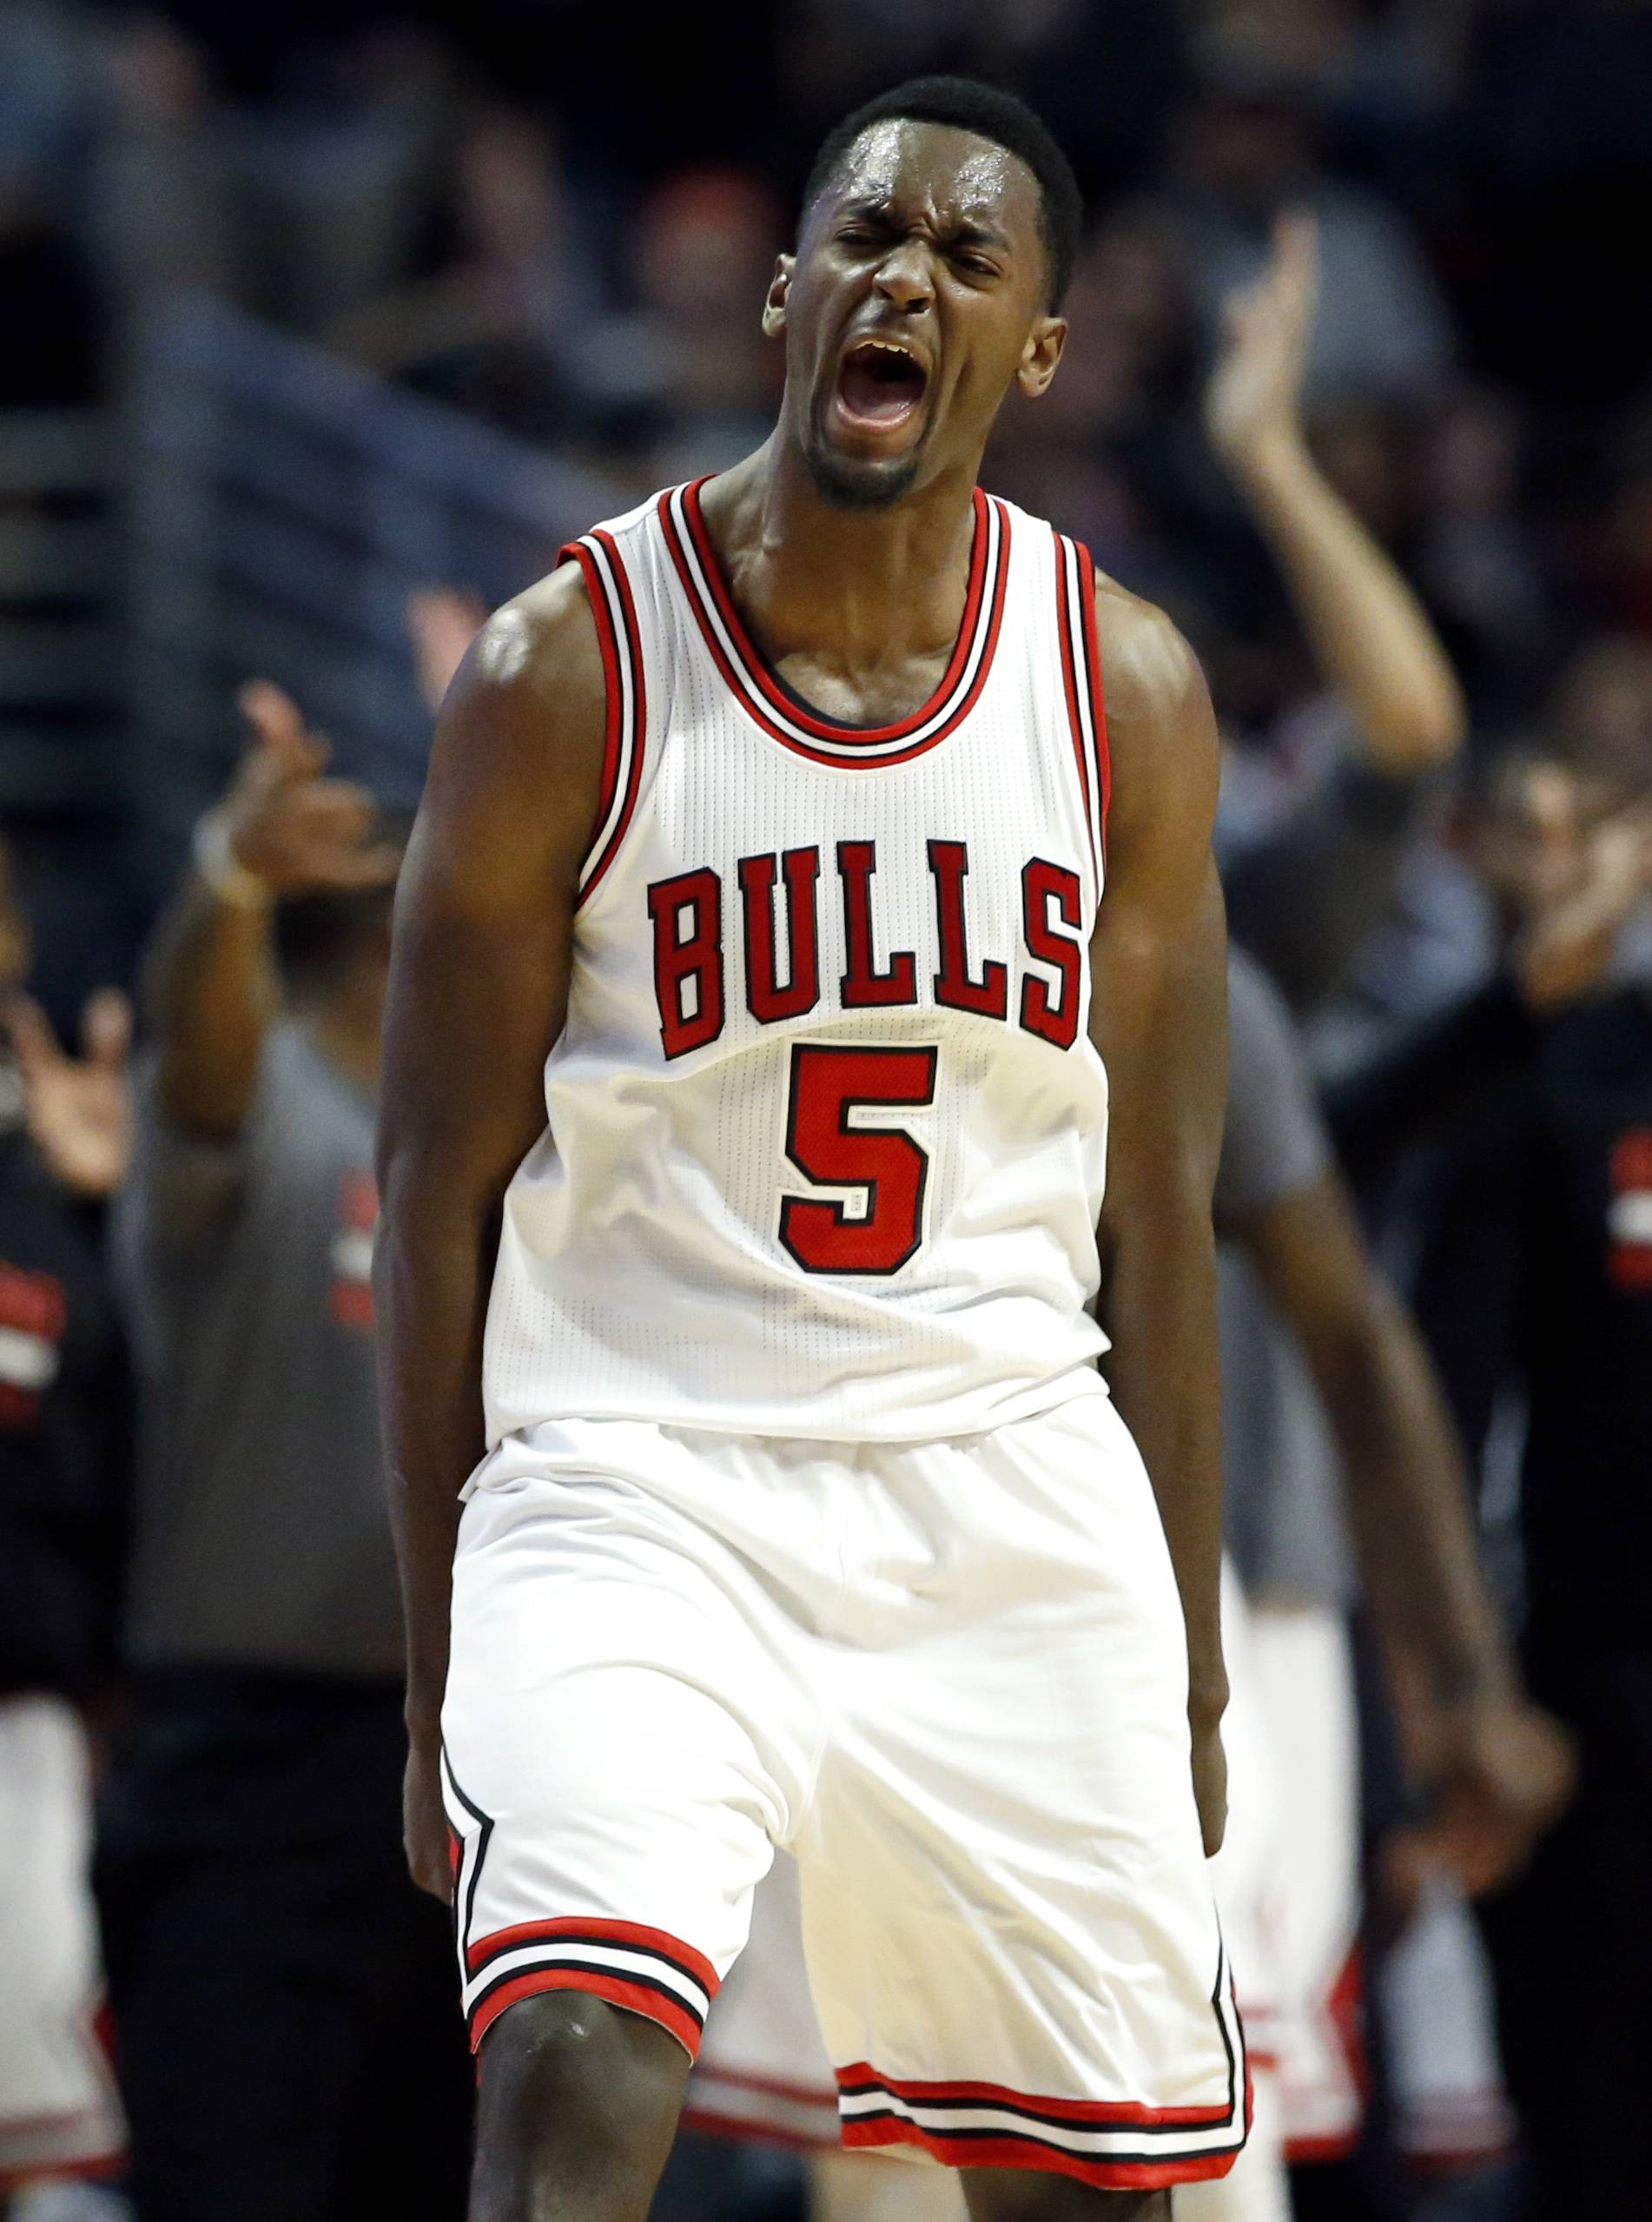 As Mirotic recovers, Bulls set to get Portis back on court